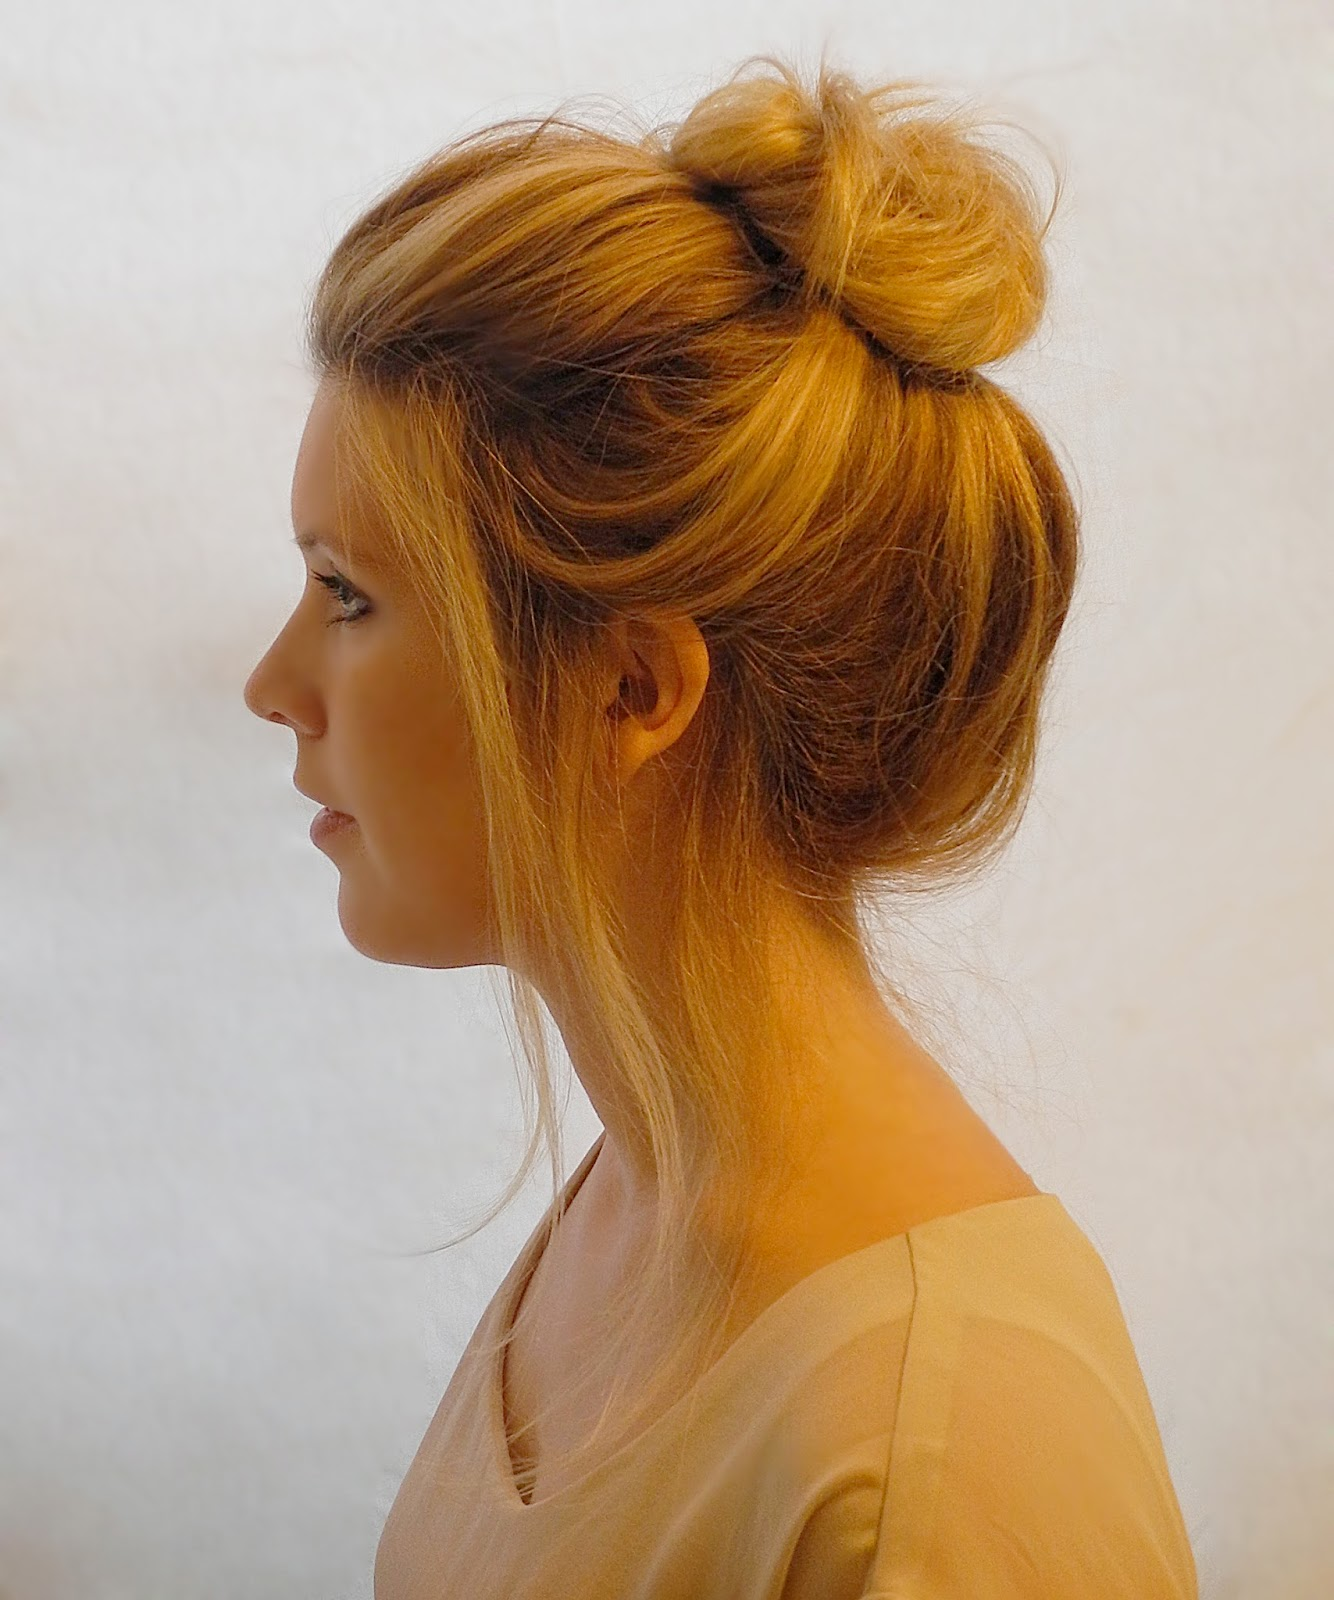 Top 10 Most Popular Bun Hairstyles Tutorails for Women To Try for Casual and Formal Events